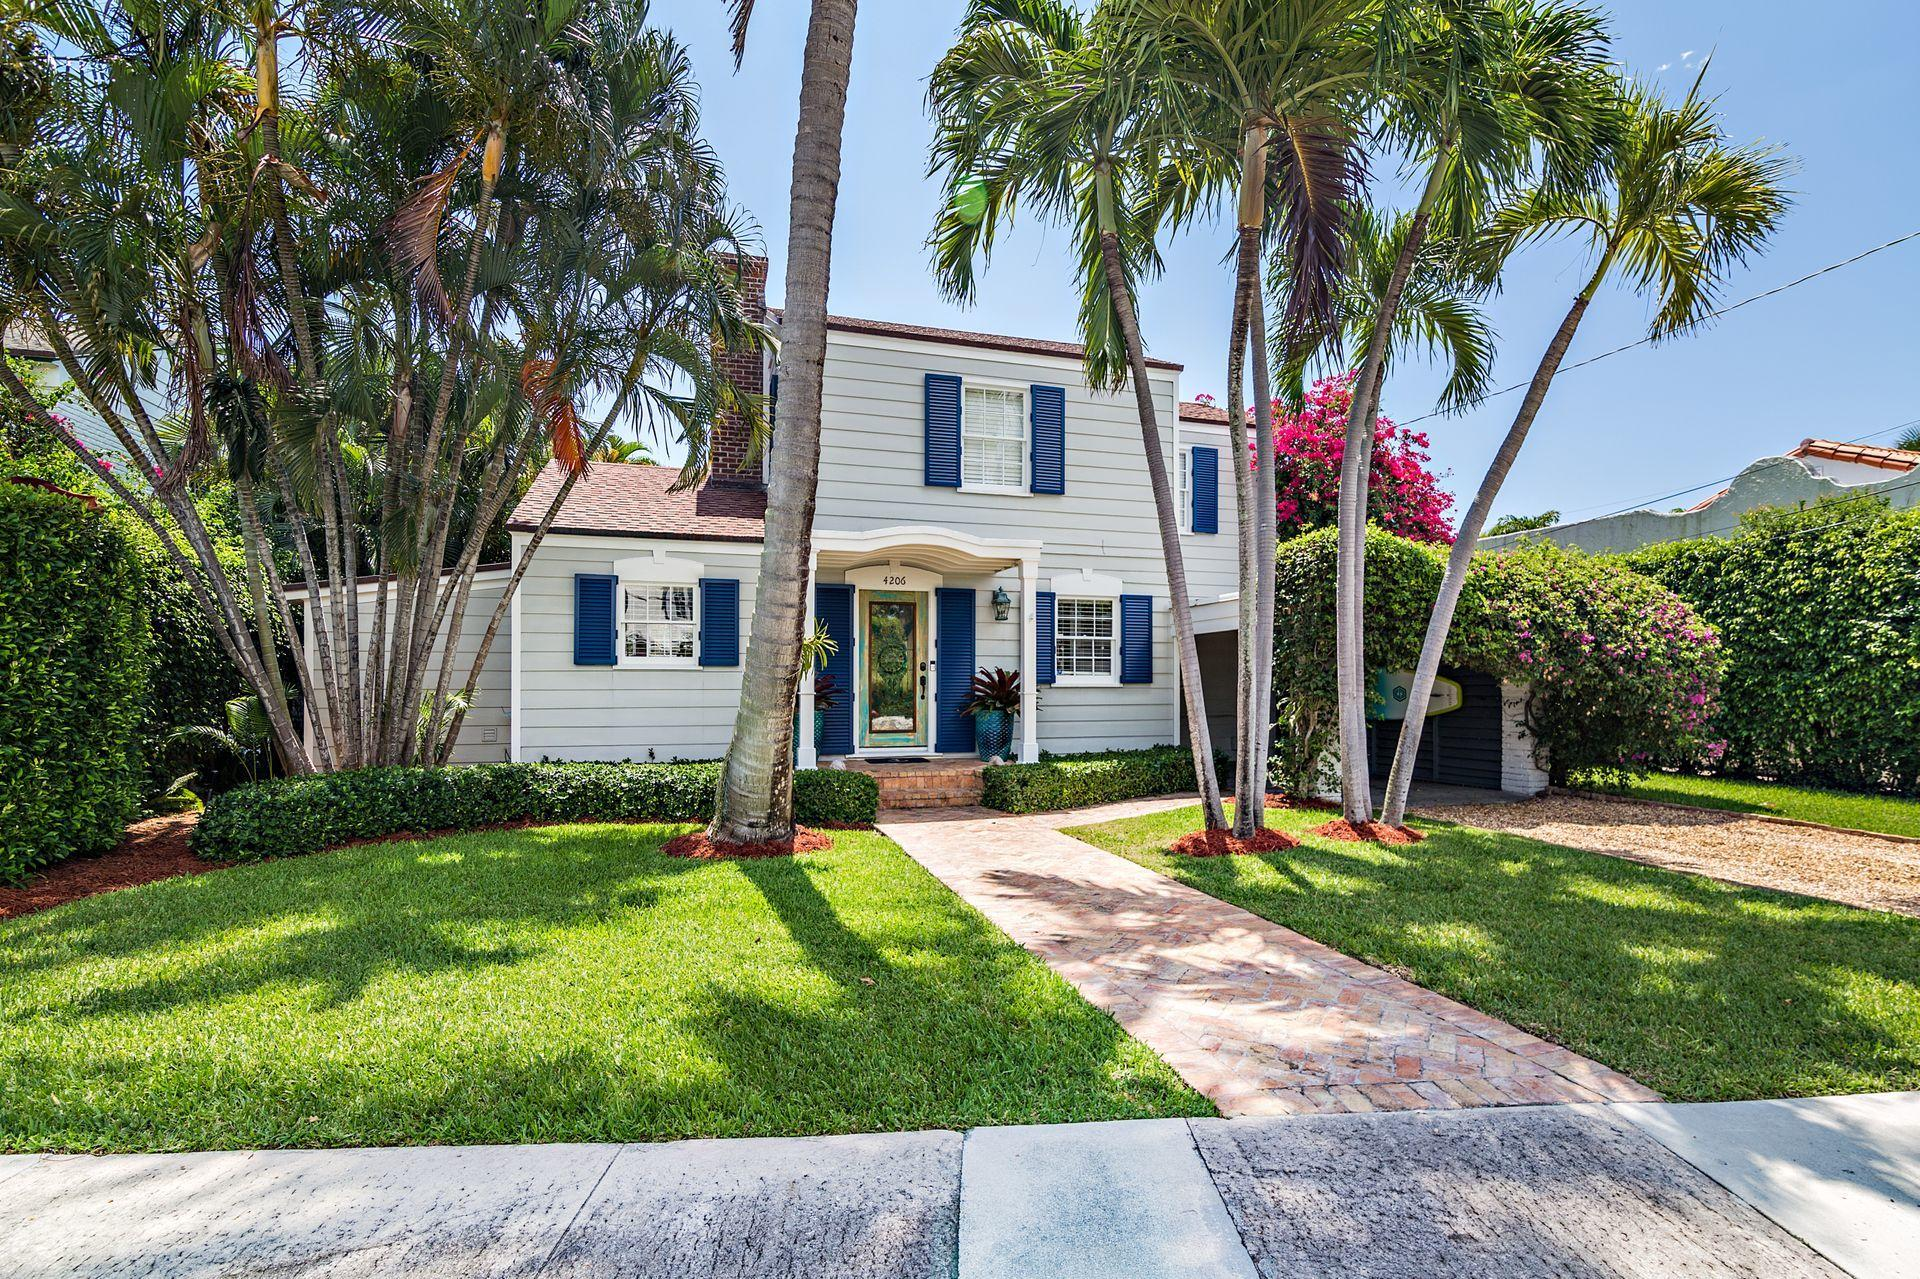 Photo of 4206 Washington Road, West Palm Beach, FL 33405